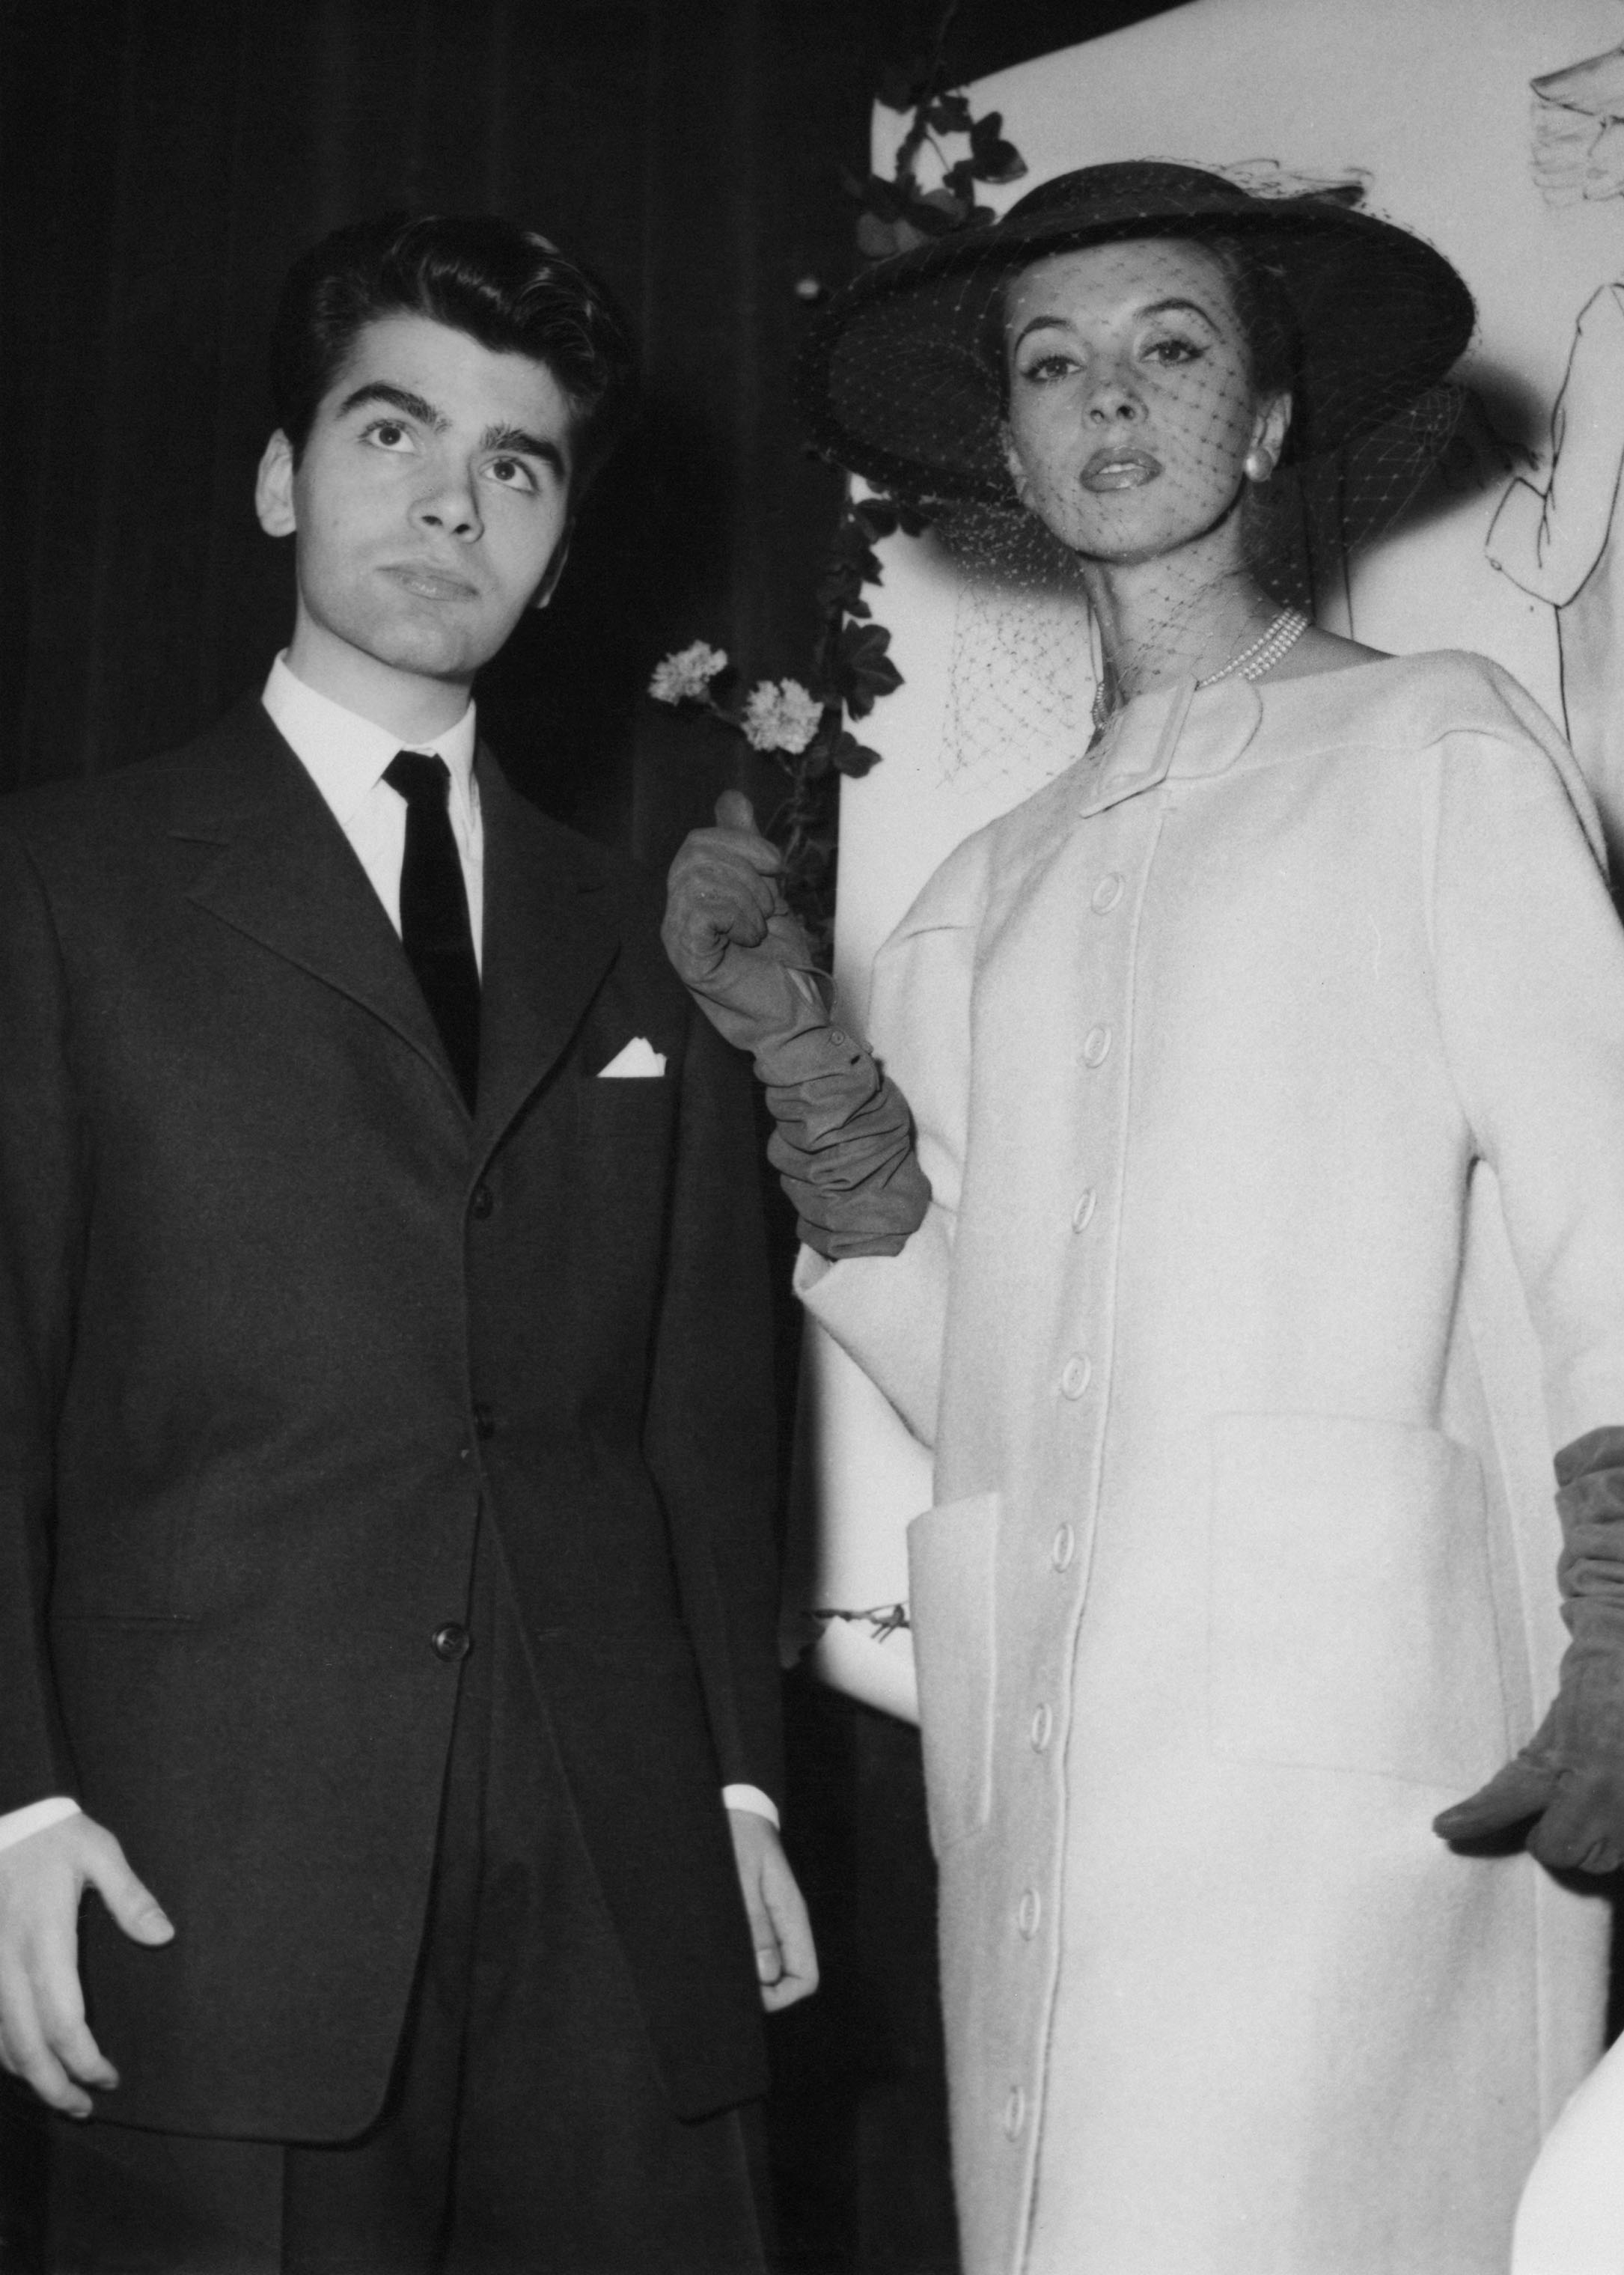 Karl Lagerfeld after winning the coats category in a design competition sponsored by the International Wool Secretariat in Paris on Dec. 14, 1954. With him is a model wearing his design.